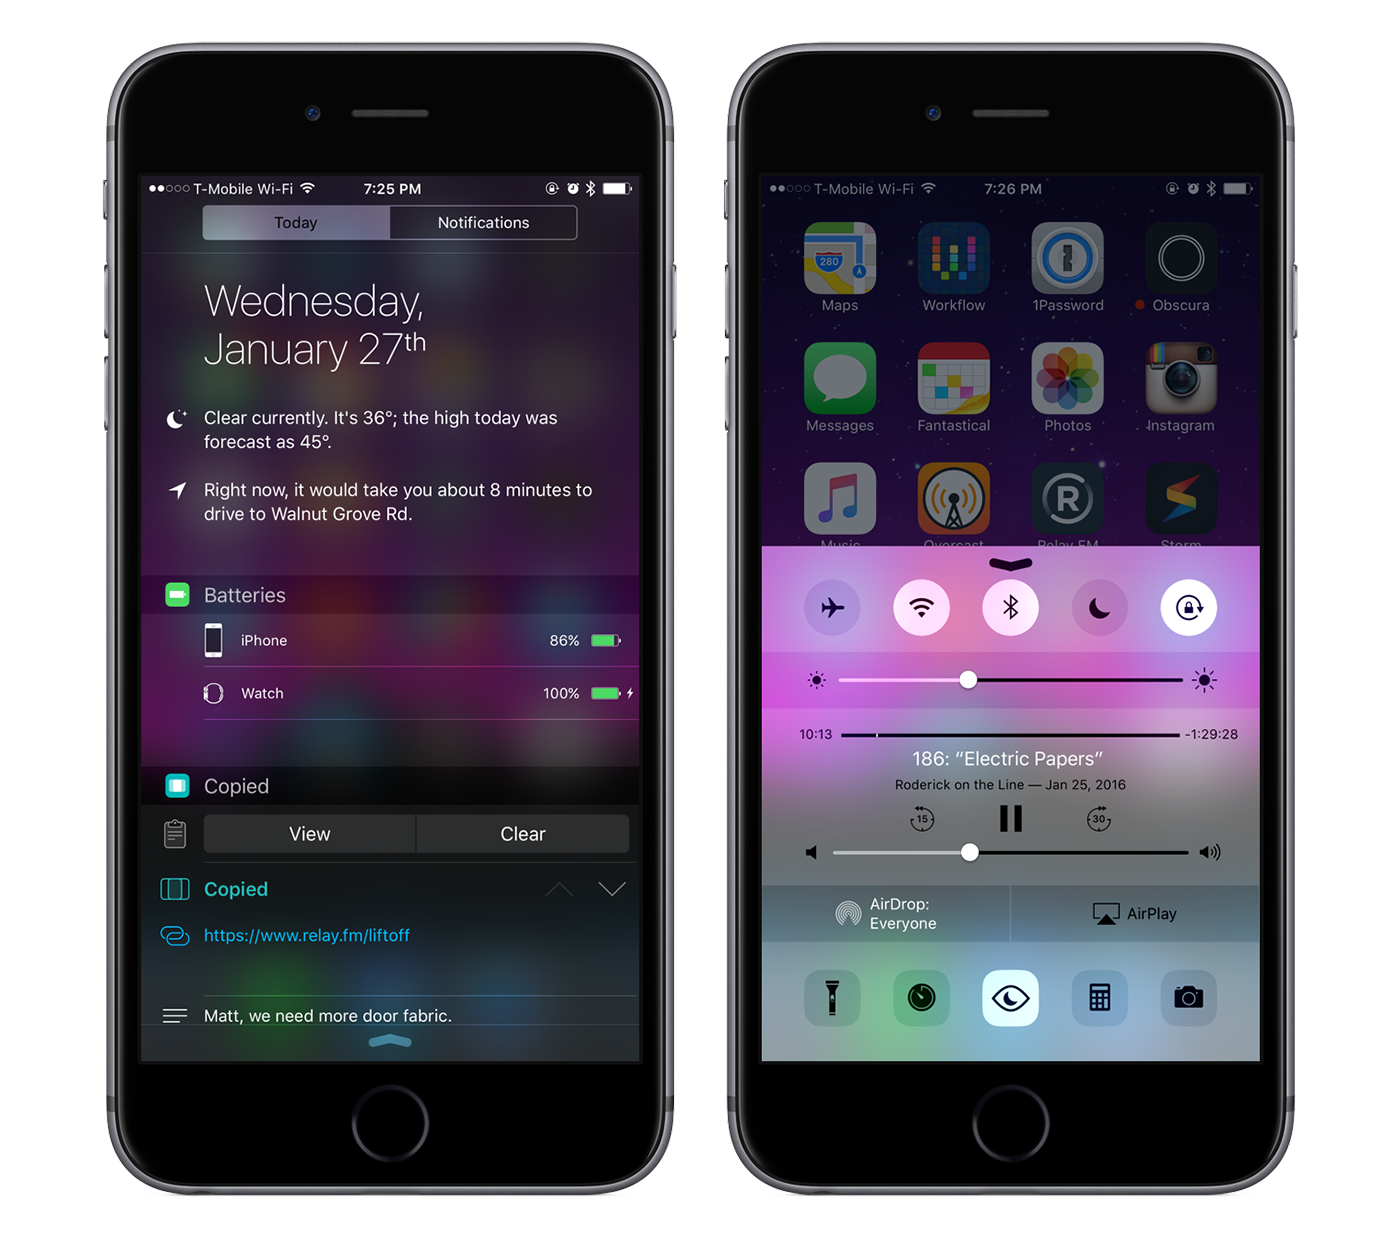 Notification Center and Control Center